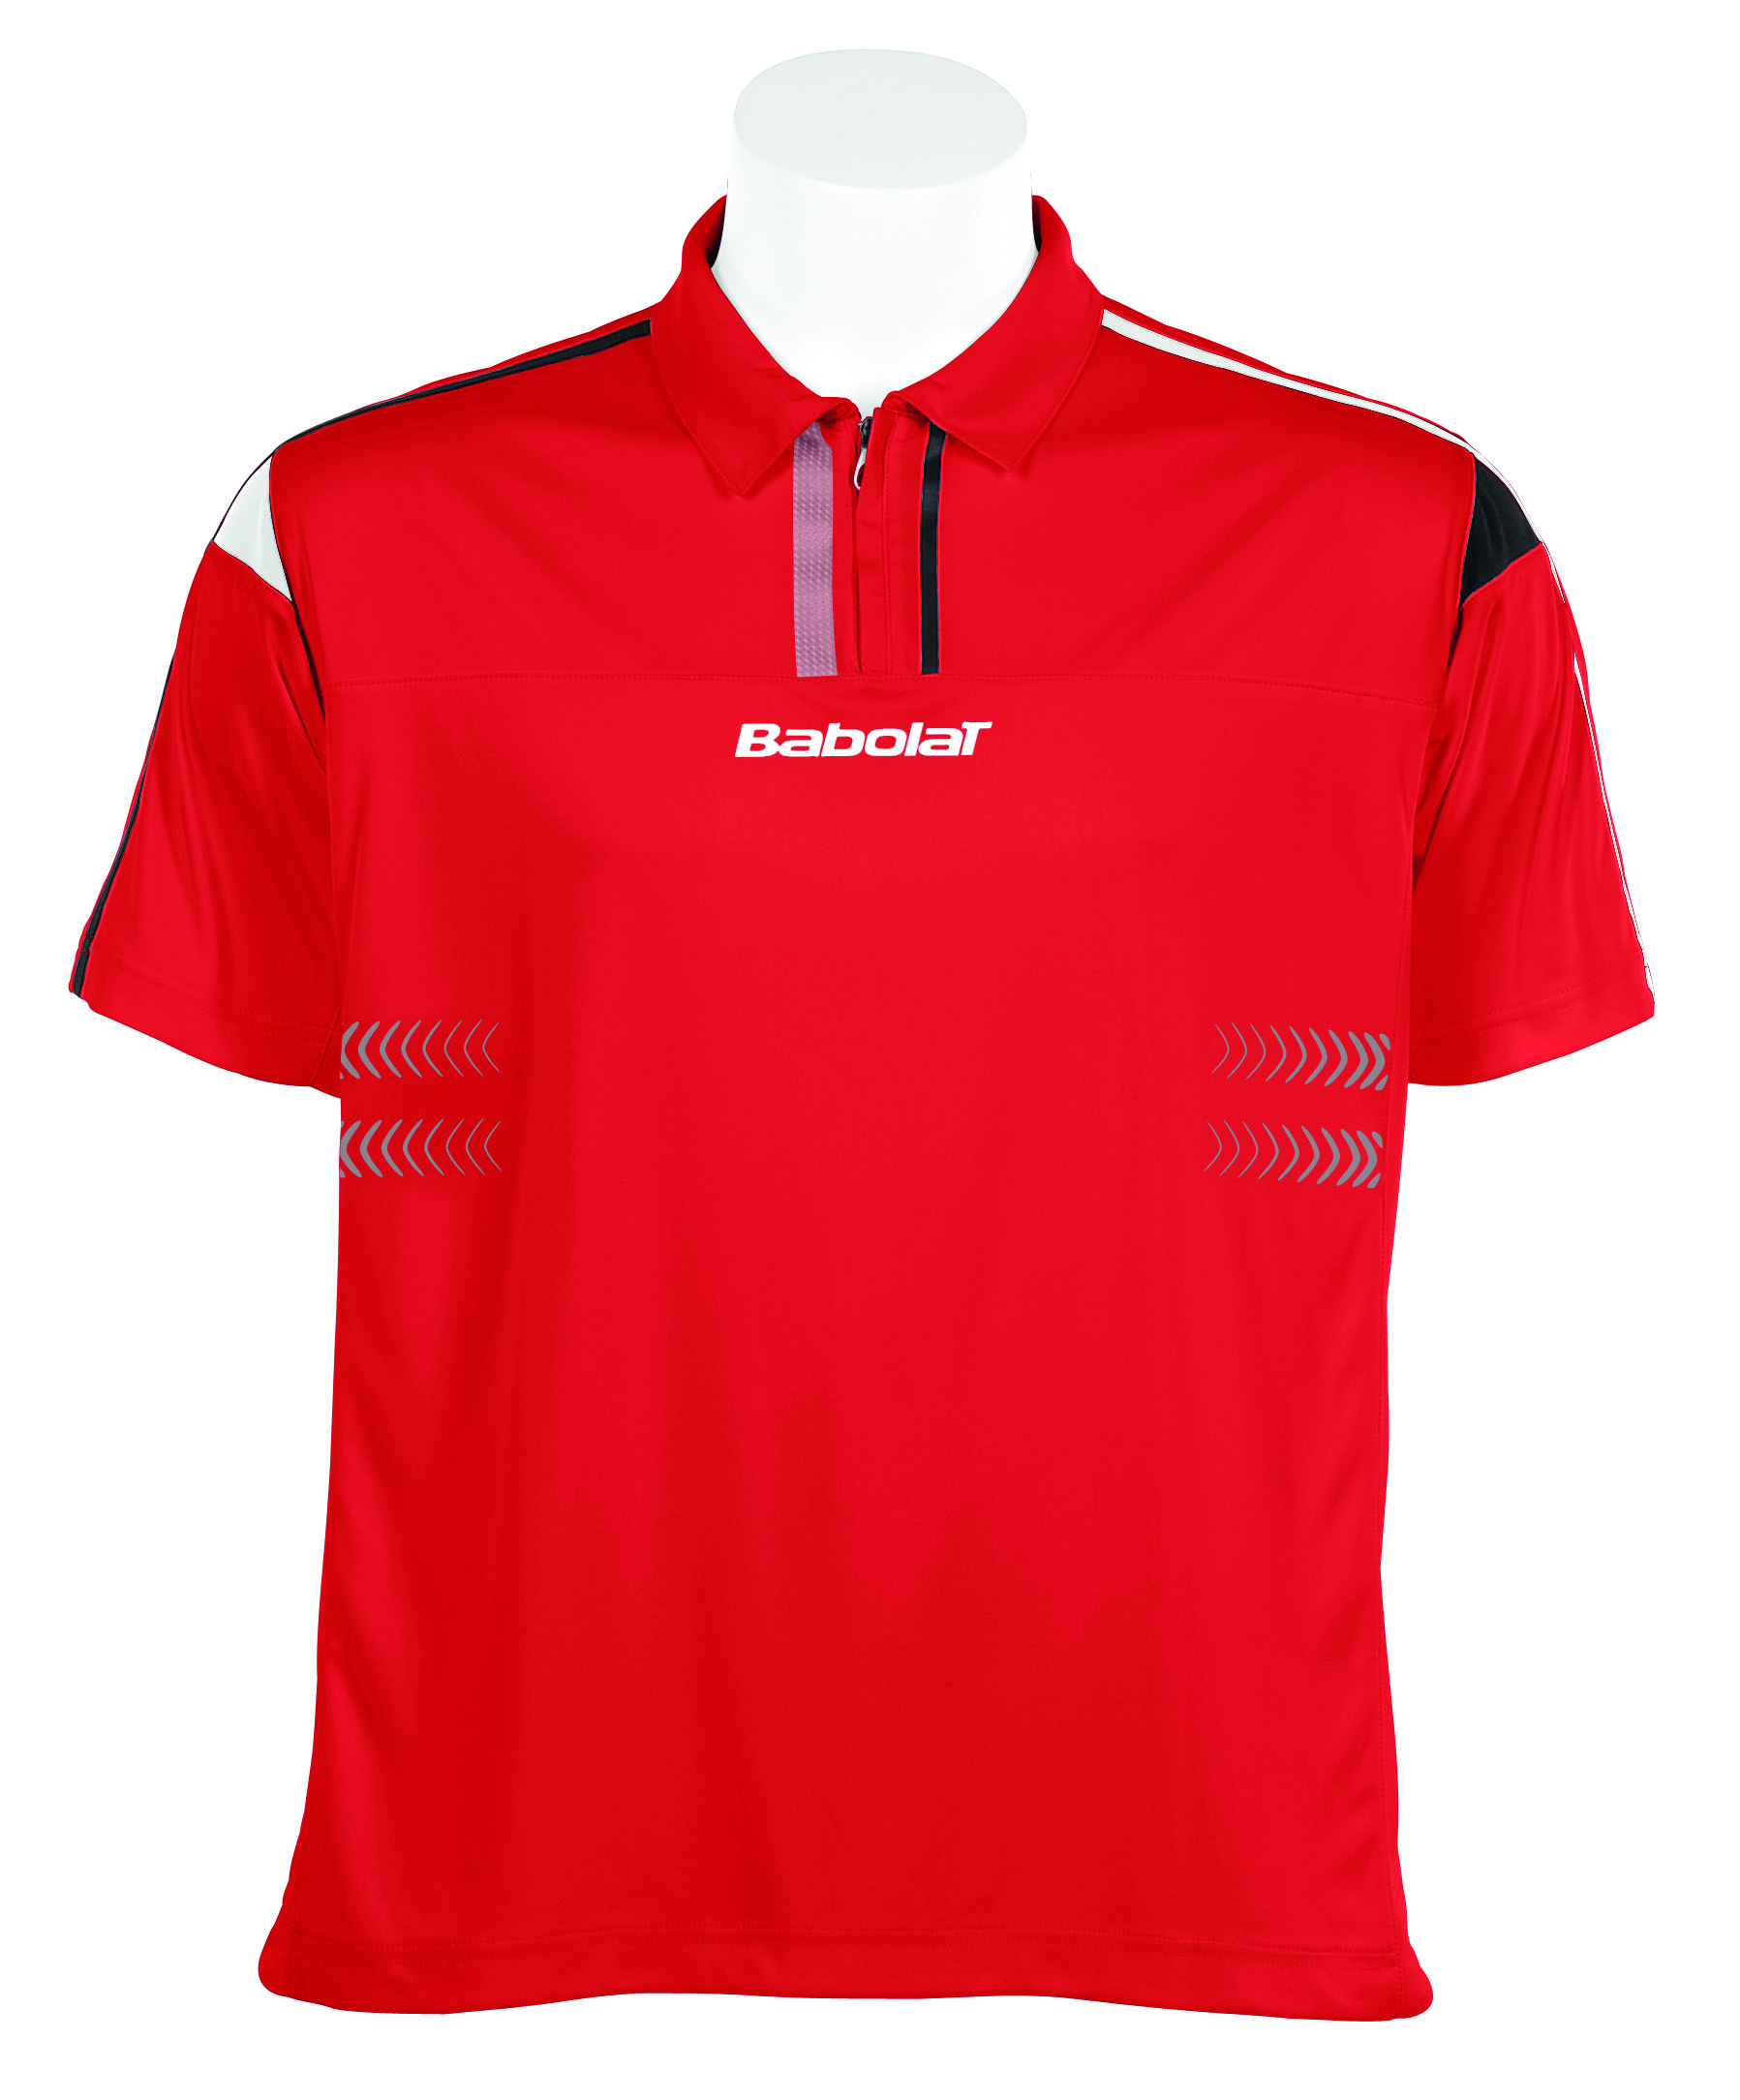 Chlapecké triko Babolat Polo Half Zip Boy Performance red Velikost: 128